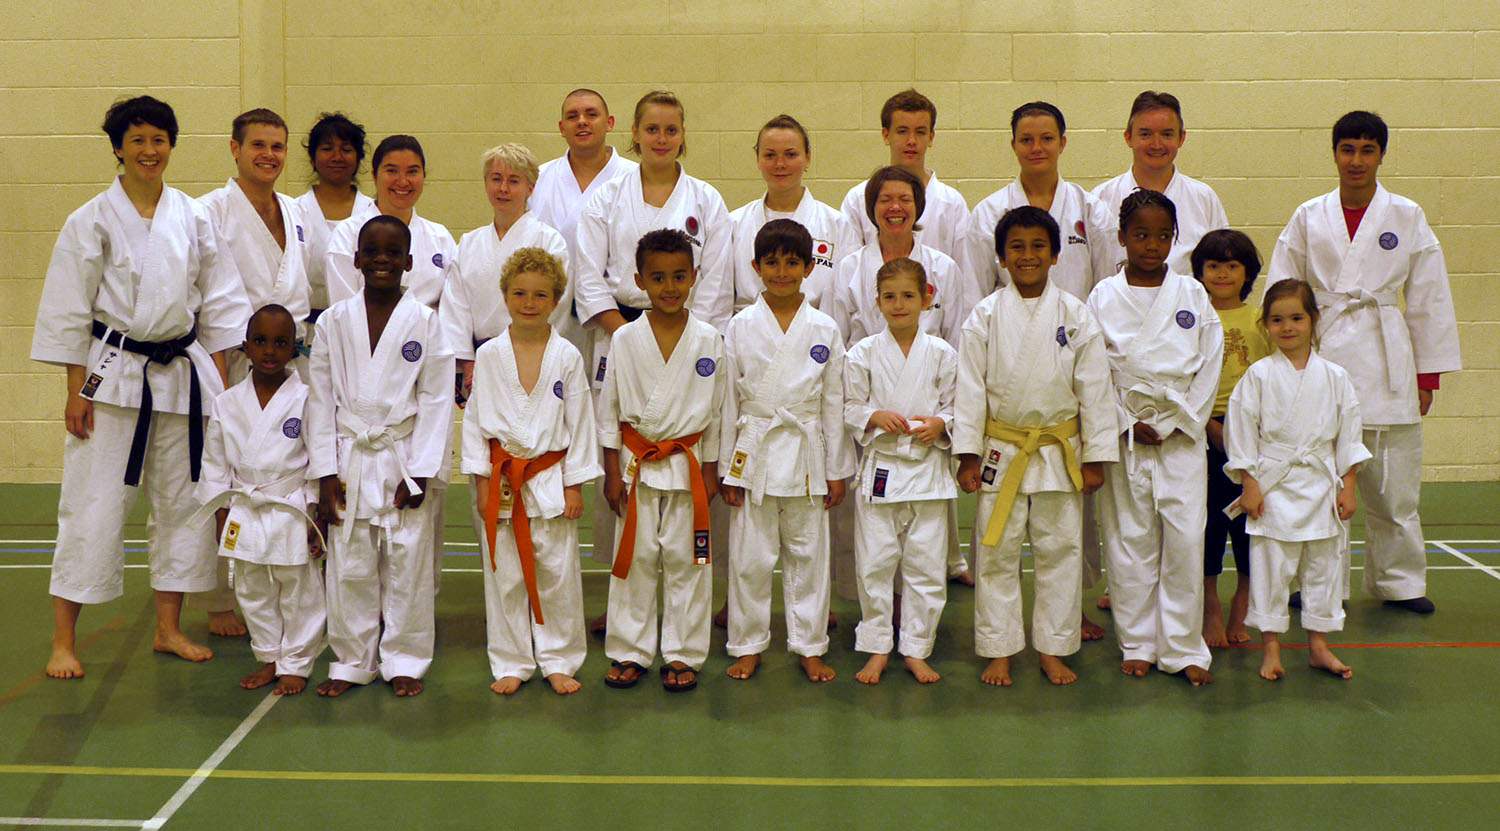 JKA European Champions Visit Shiranamikai, September 2010